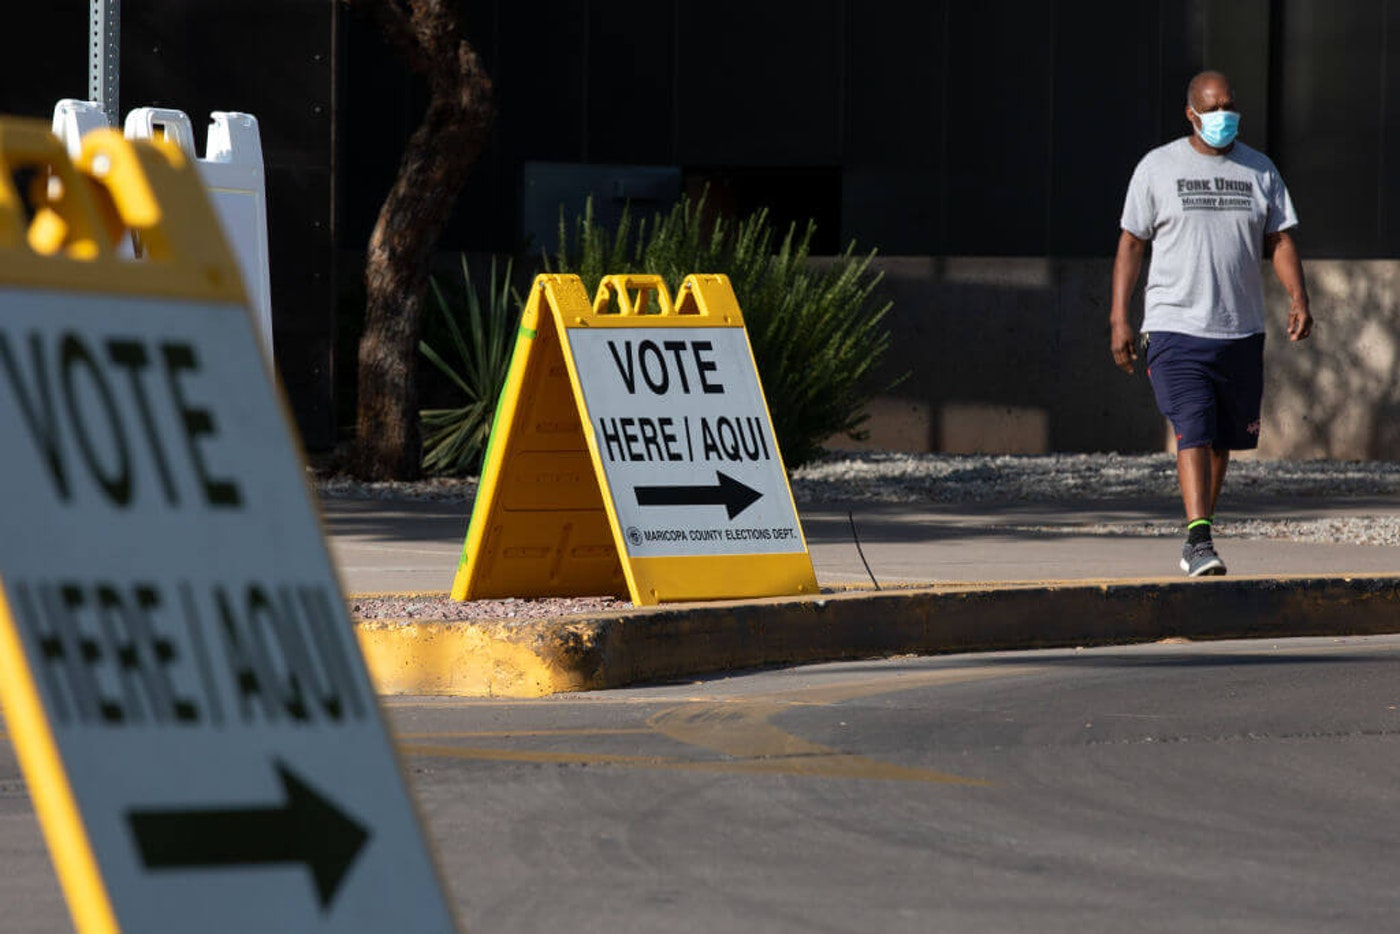 PHOENIX, AZ - AUGUST 04: Kevin Miller exits after voting during Arizona's primary election at Burton Barr Central Library on August 4, 2020 in Phoenix, Arizona. Larger venues have been catered to allow for social distancing as adjustments are made in light of the coronavirus pandemic. (Photo by Courtney Pedroza/Getty Images)